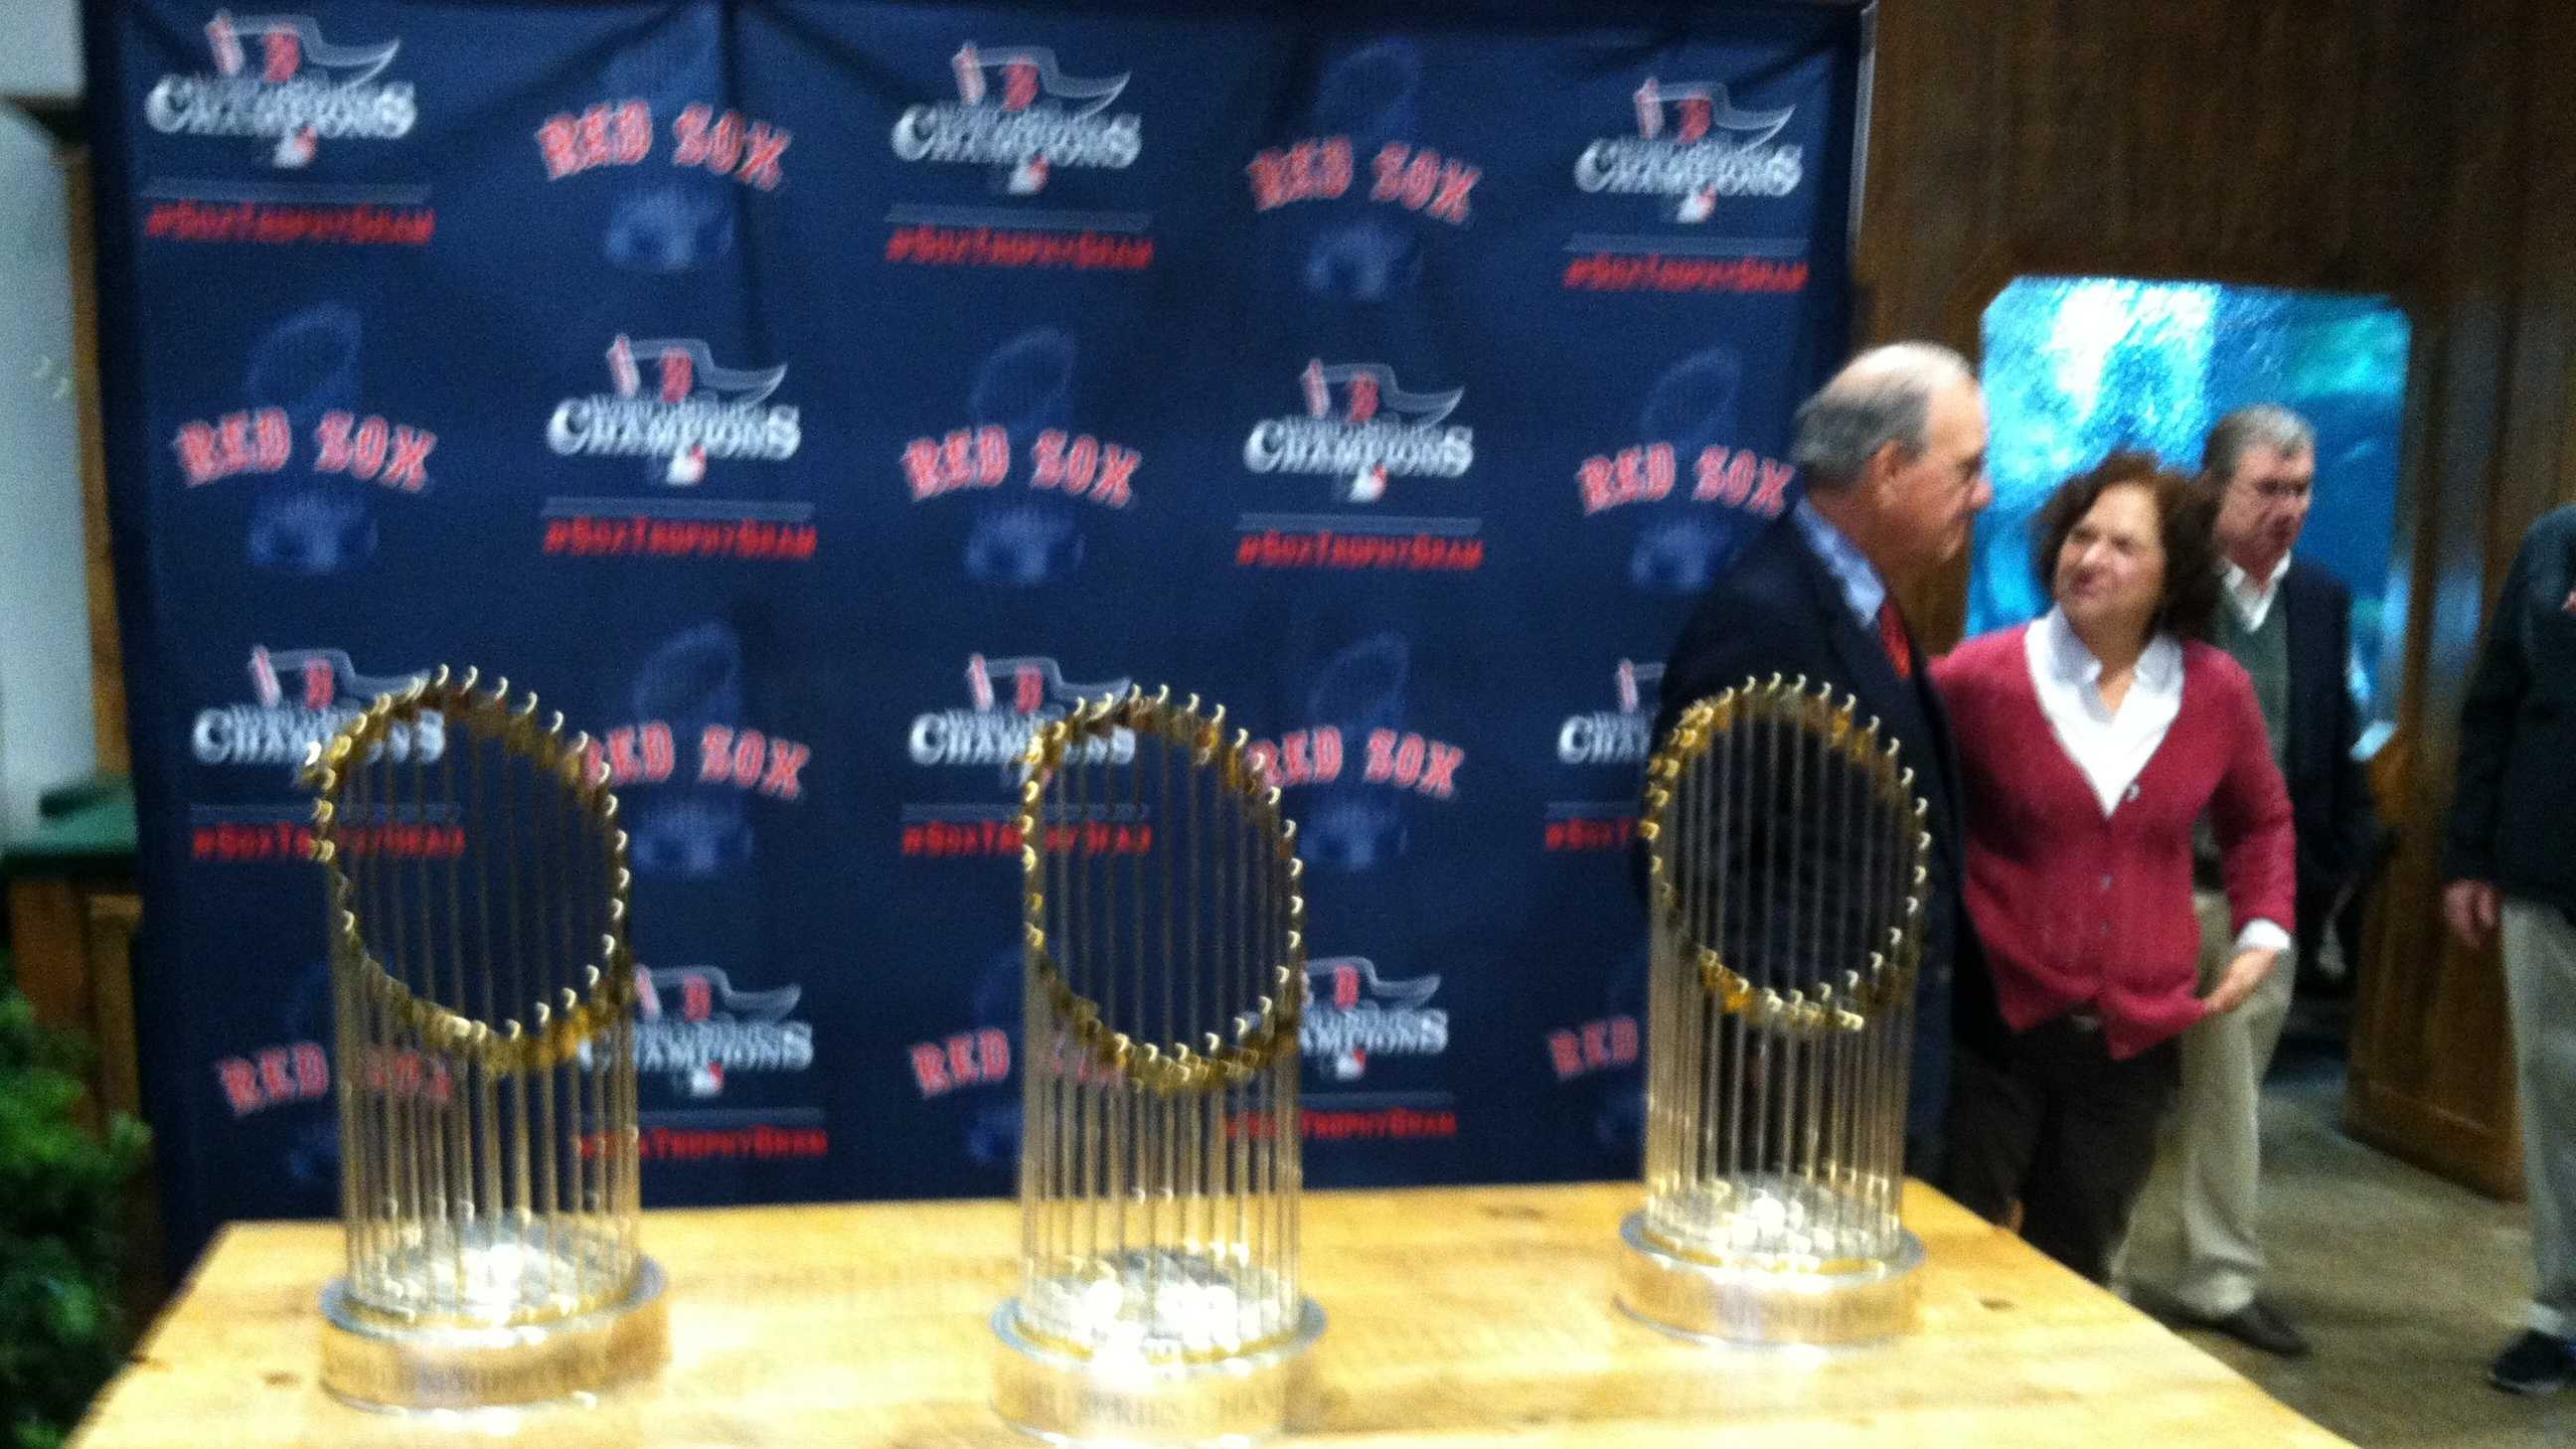 The Red Sox brought the World Series trophies from 2004, 2007 and 2013 to Maine on Saturday. Click through to see pictures from the event at L.L. Bean. Click here to watch video from the event.